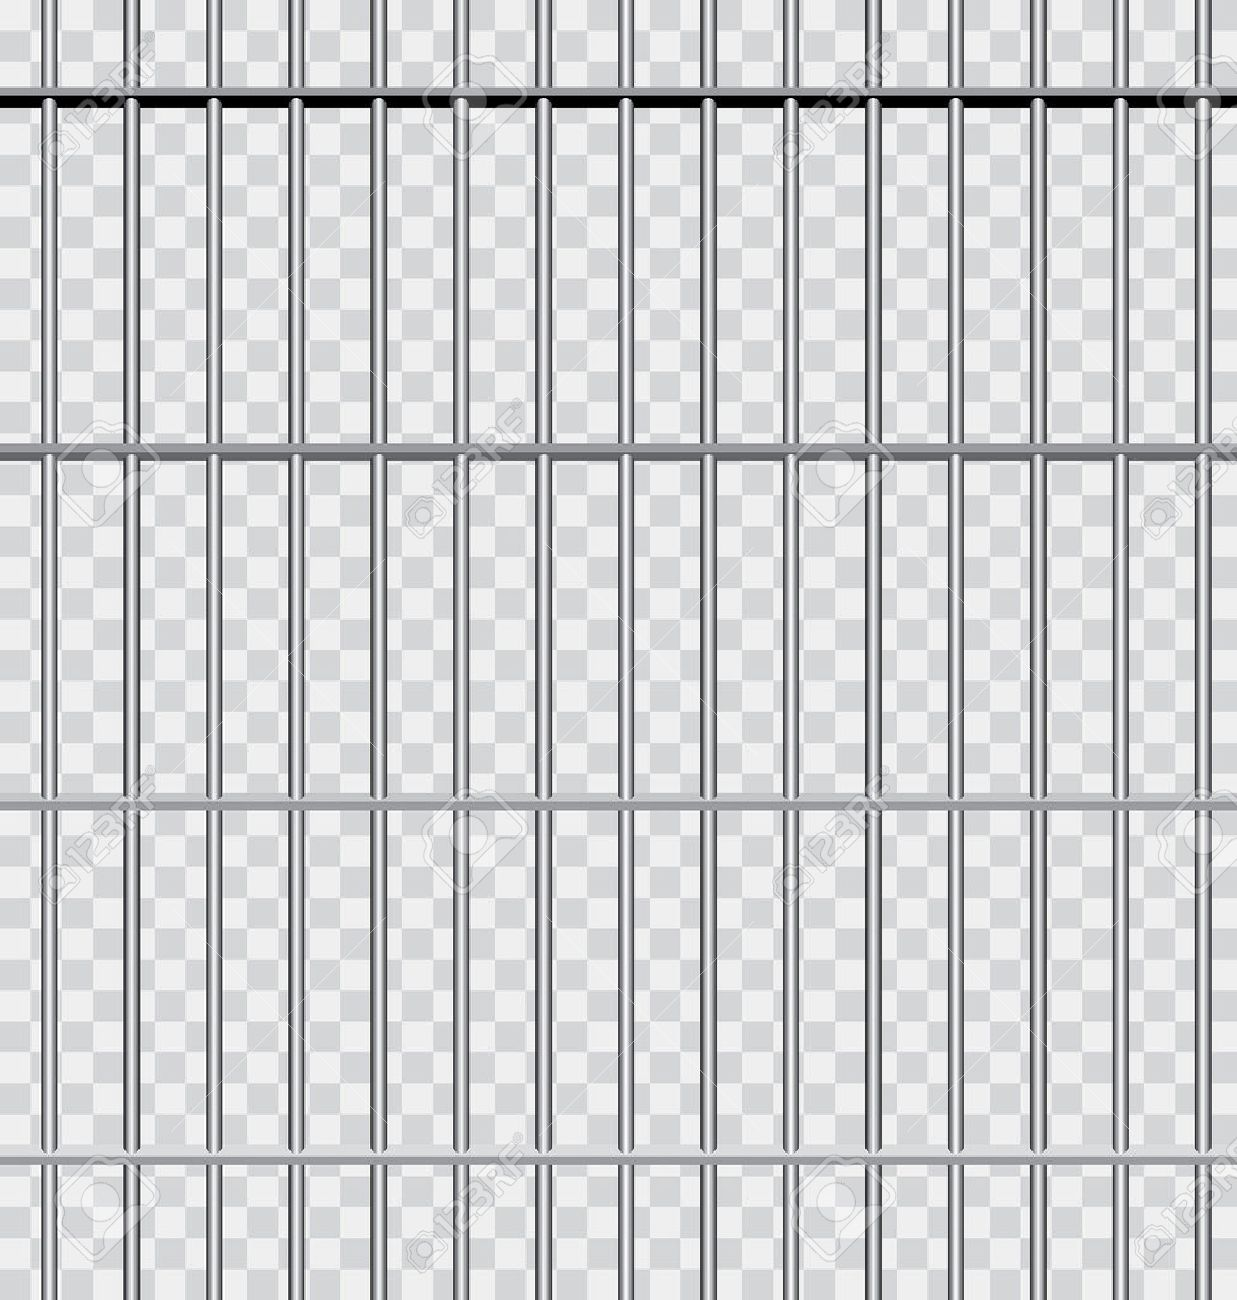 vector background with jail bars - 37202968